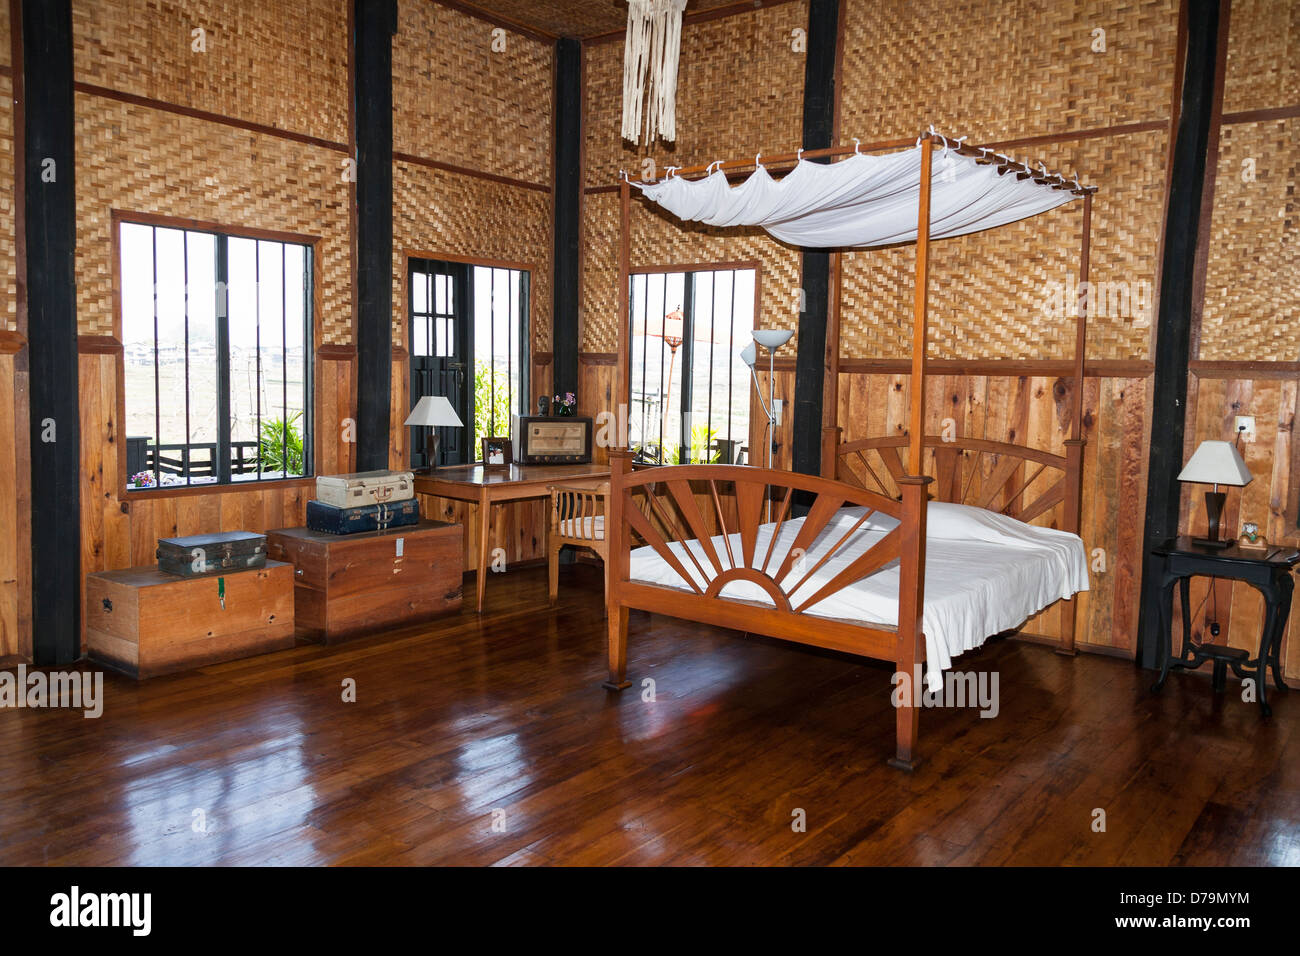 Lovely Bedroom Inside The Inthar Heritage House, Inpawkhon Village, Inle Lake,  Shan State, Myanmar, (Burma)